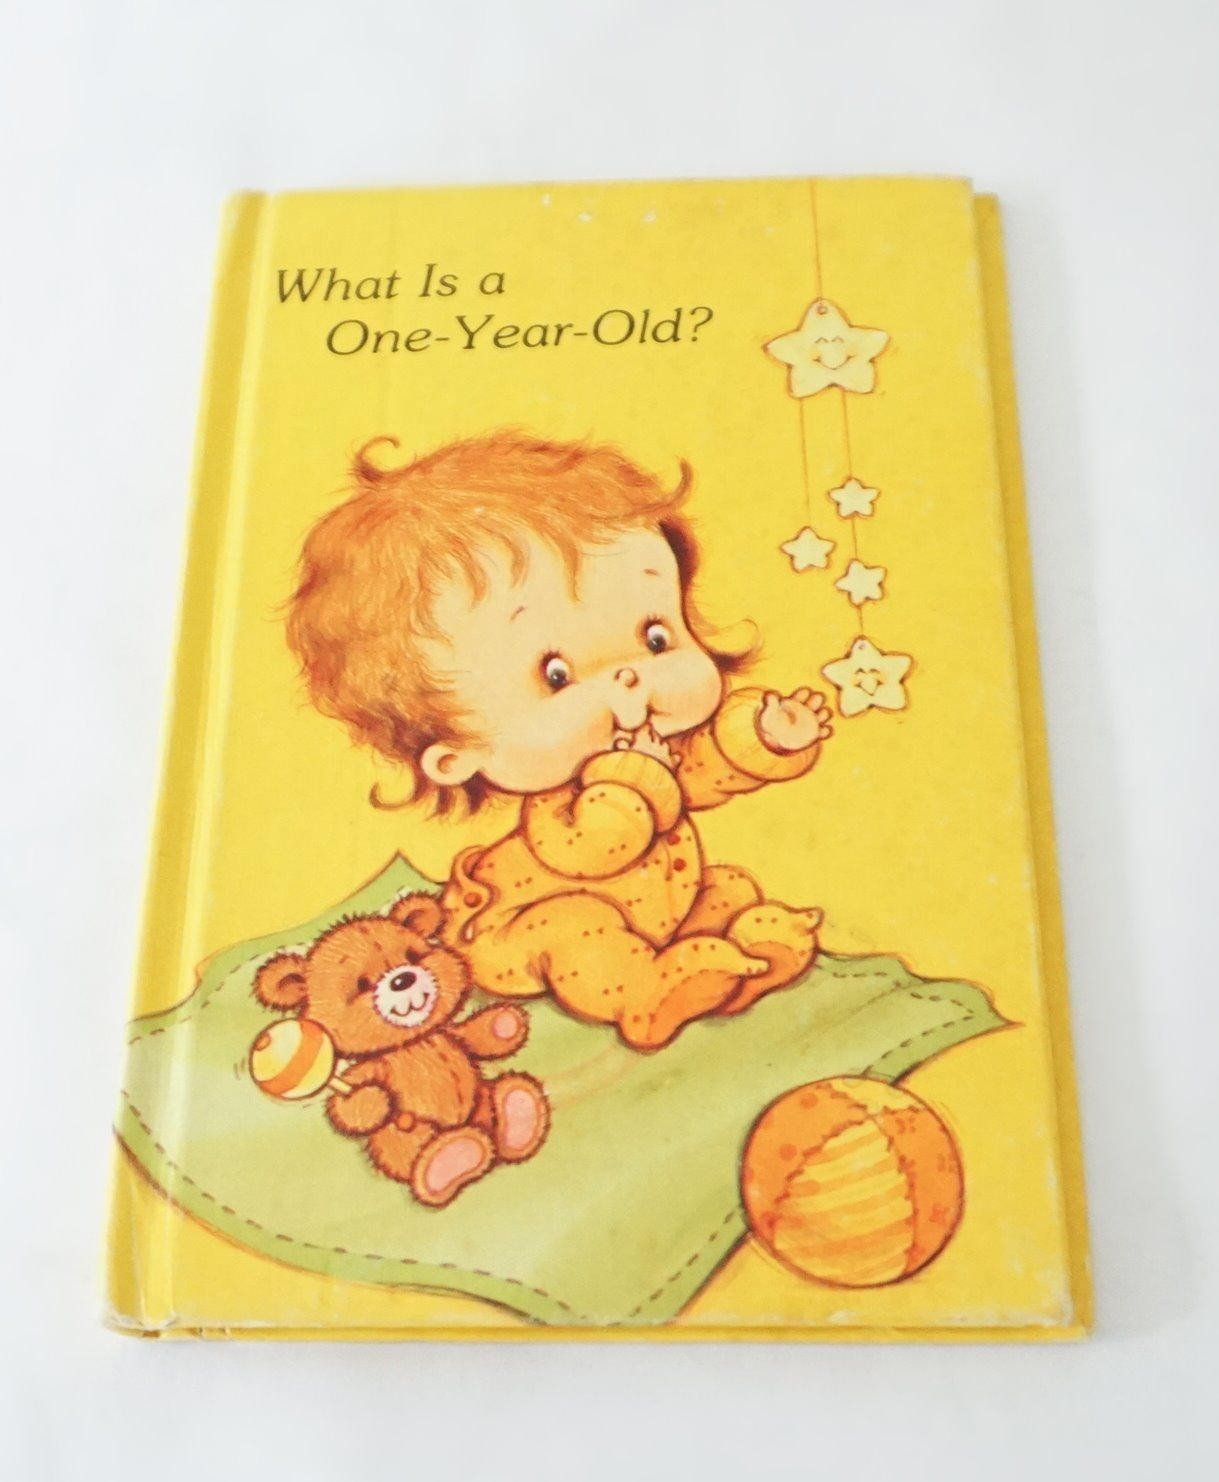 What is a one year old american greetings 1980s hardcover book what is a one year old american greetings 1980s hardcover book vintage birthday m4hsunfo